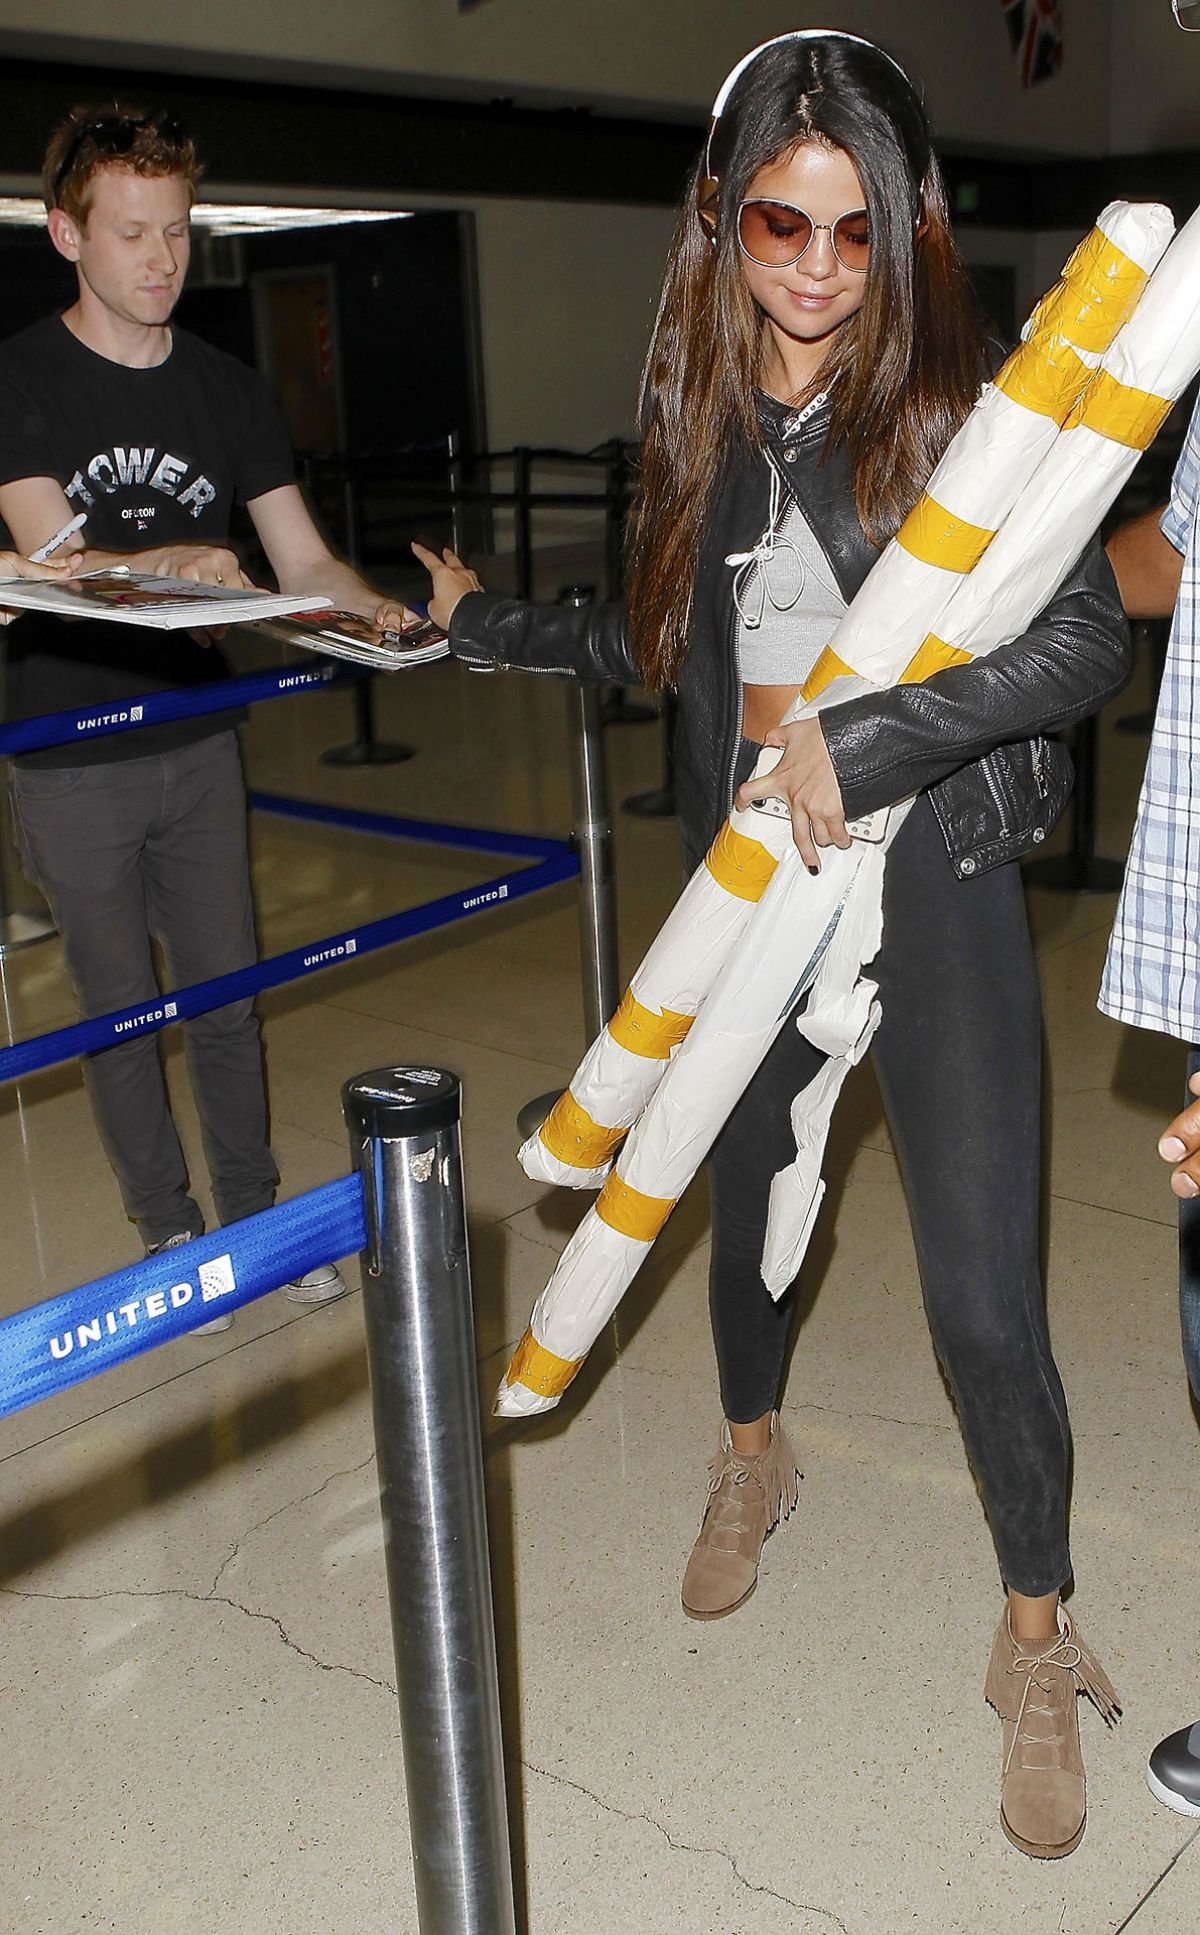 SELENA GOMEZ at LAX Airport in Los Angels 1305